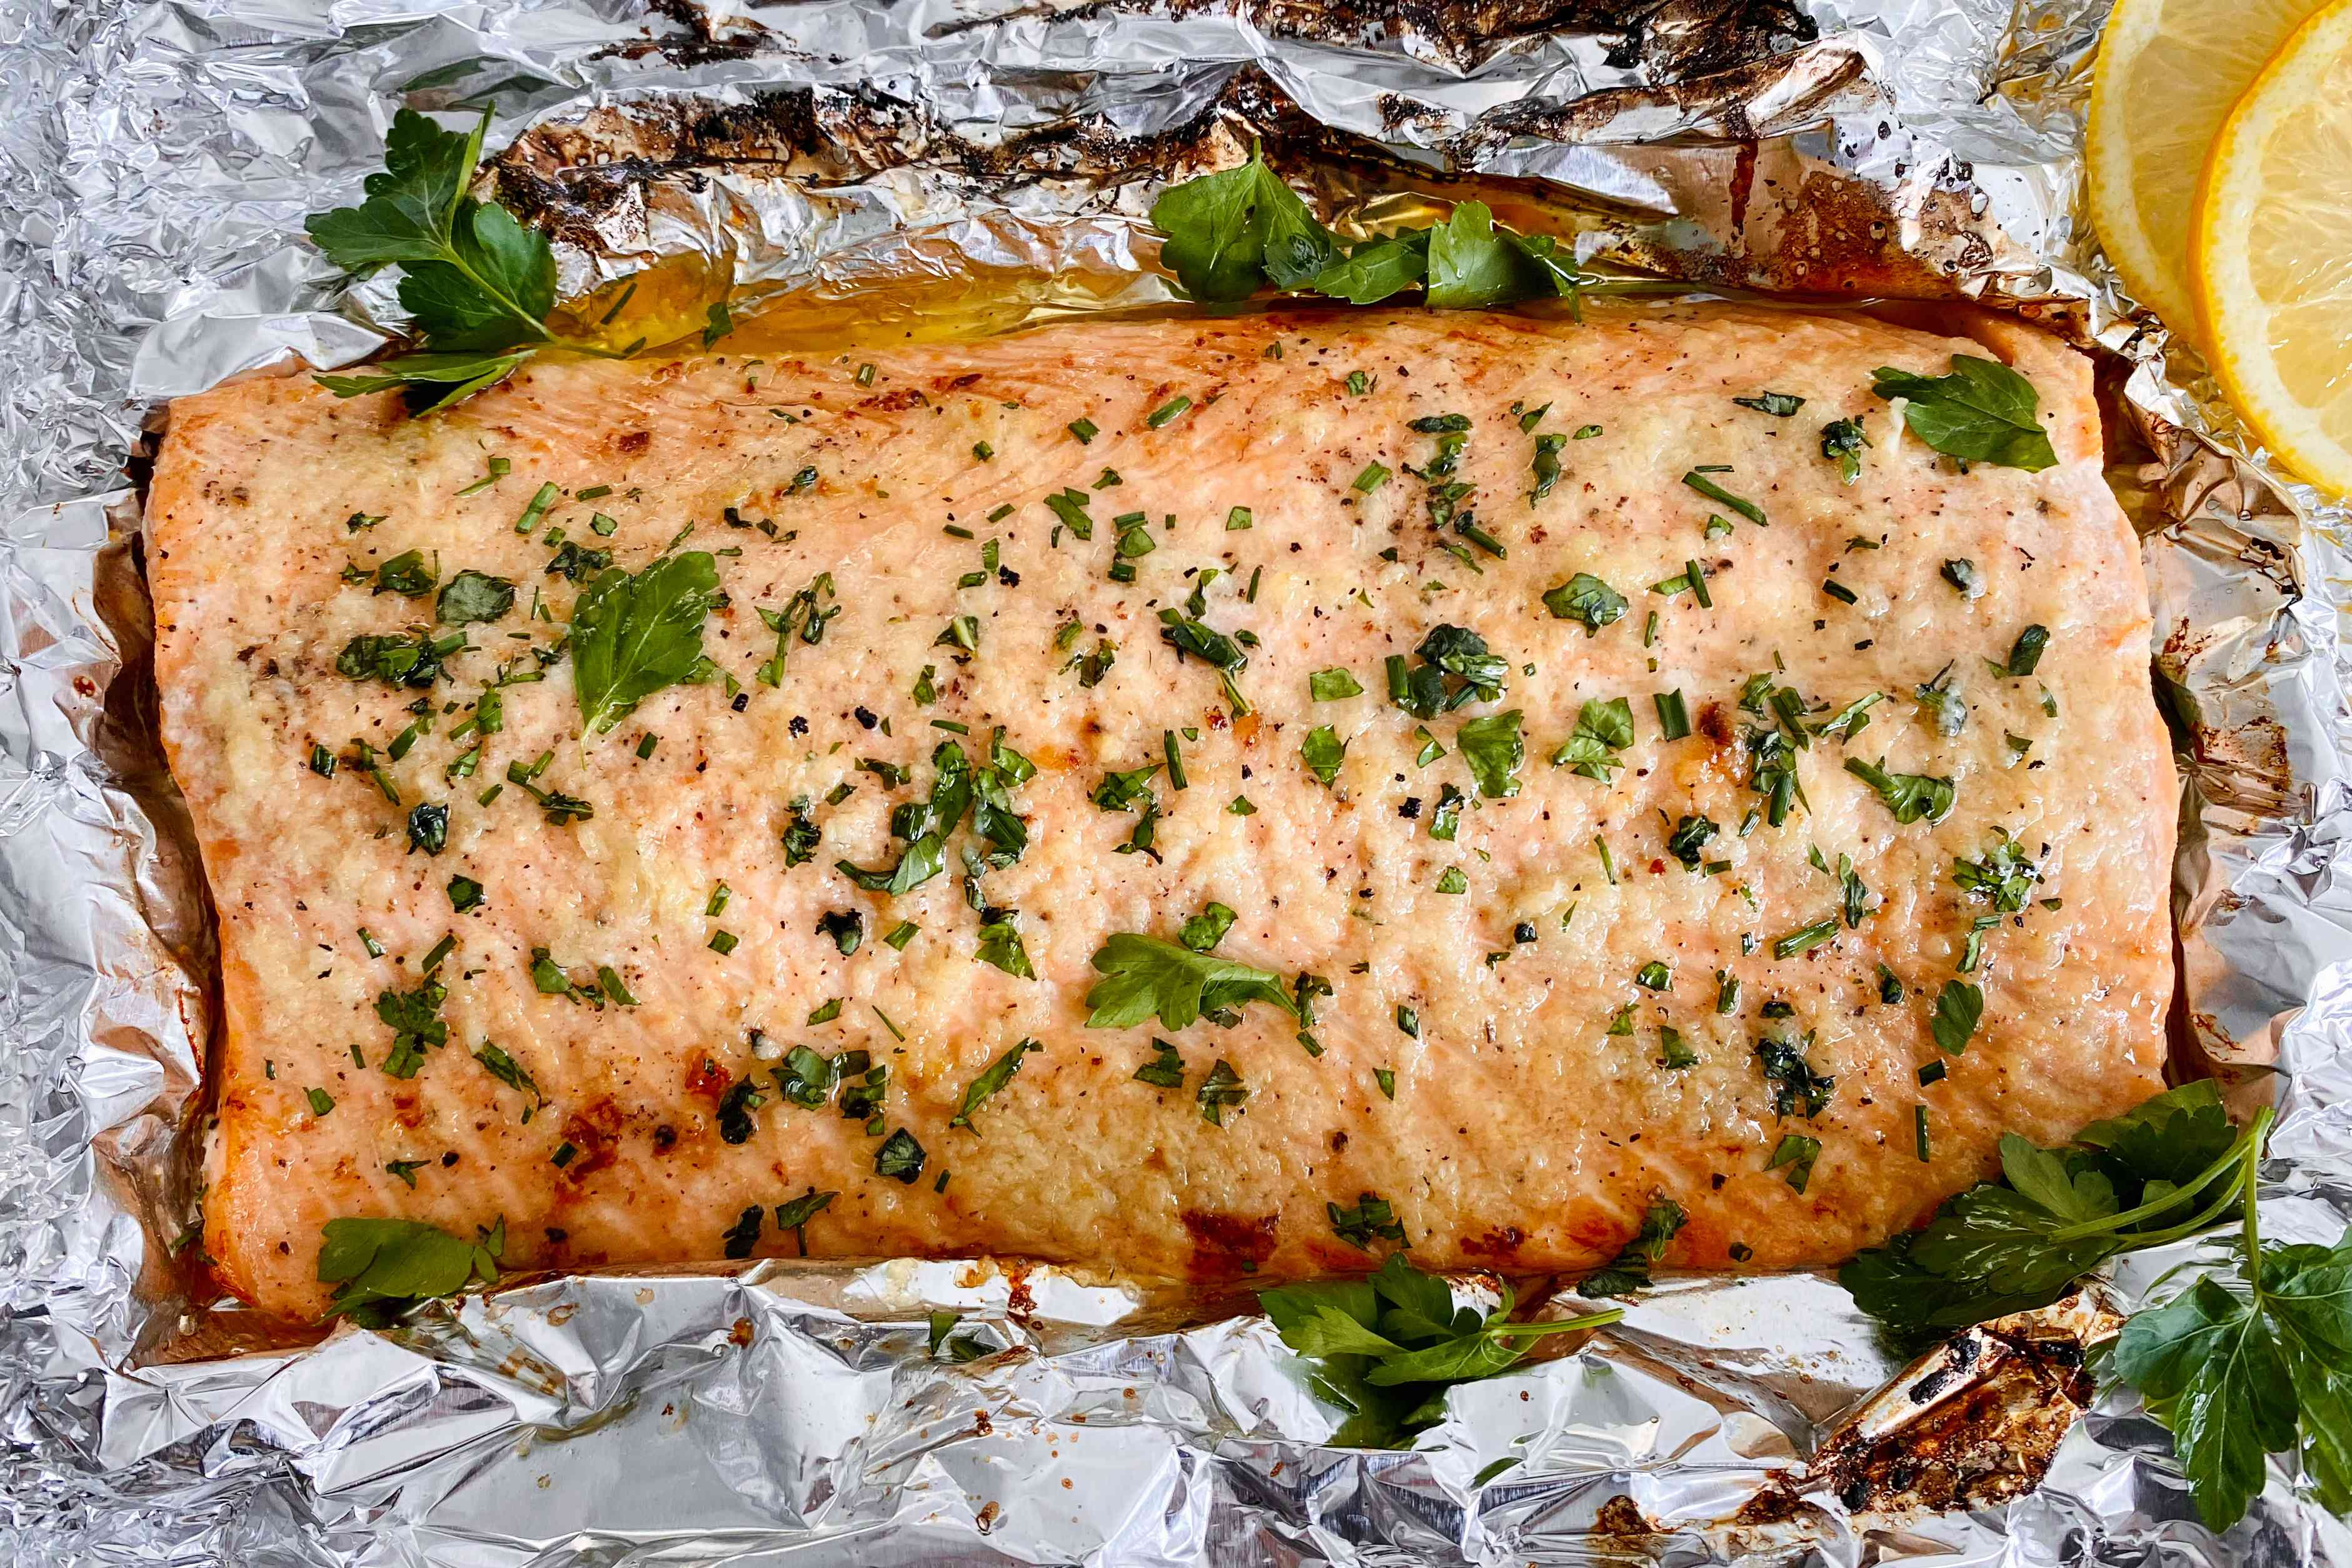 Garlic Butter Roasted Salmon topped with herbs and set on foil.